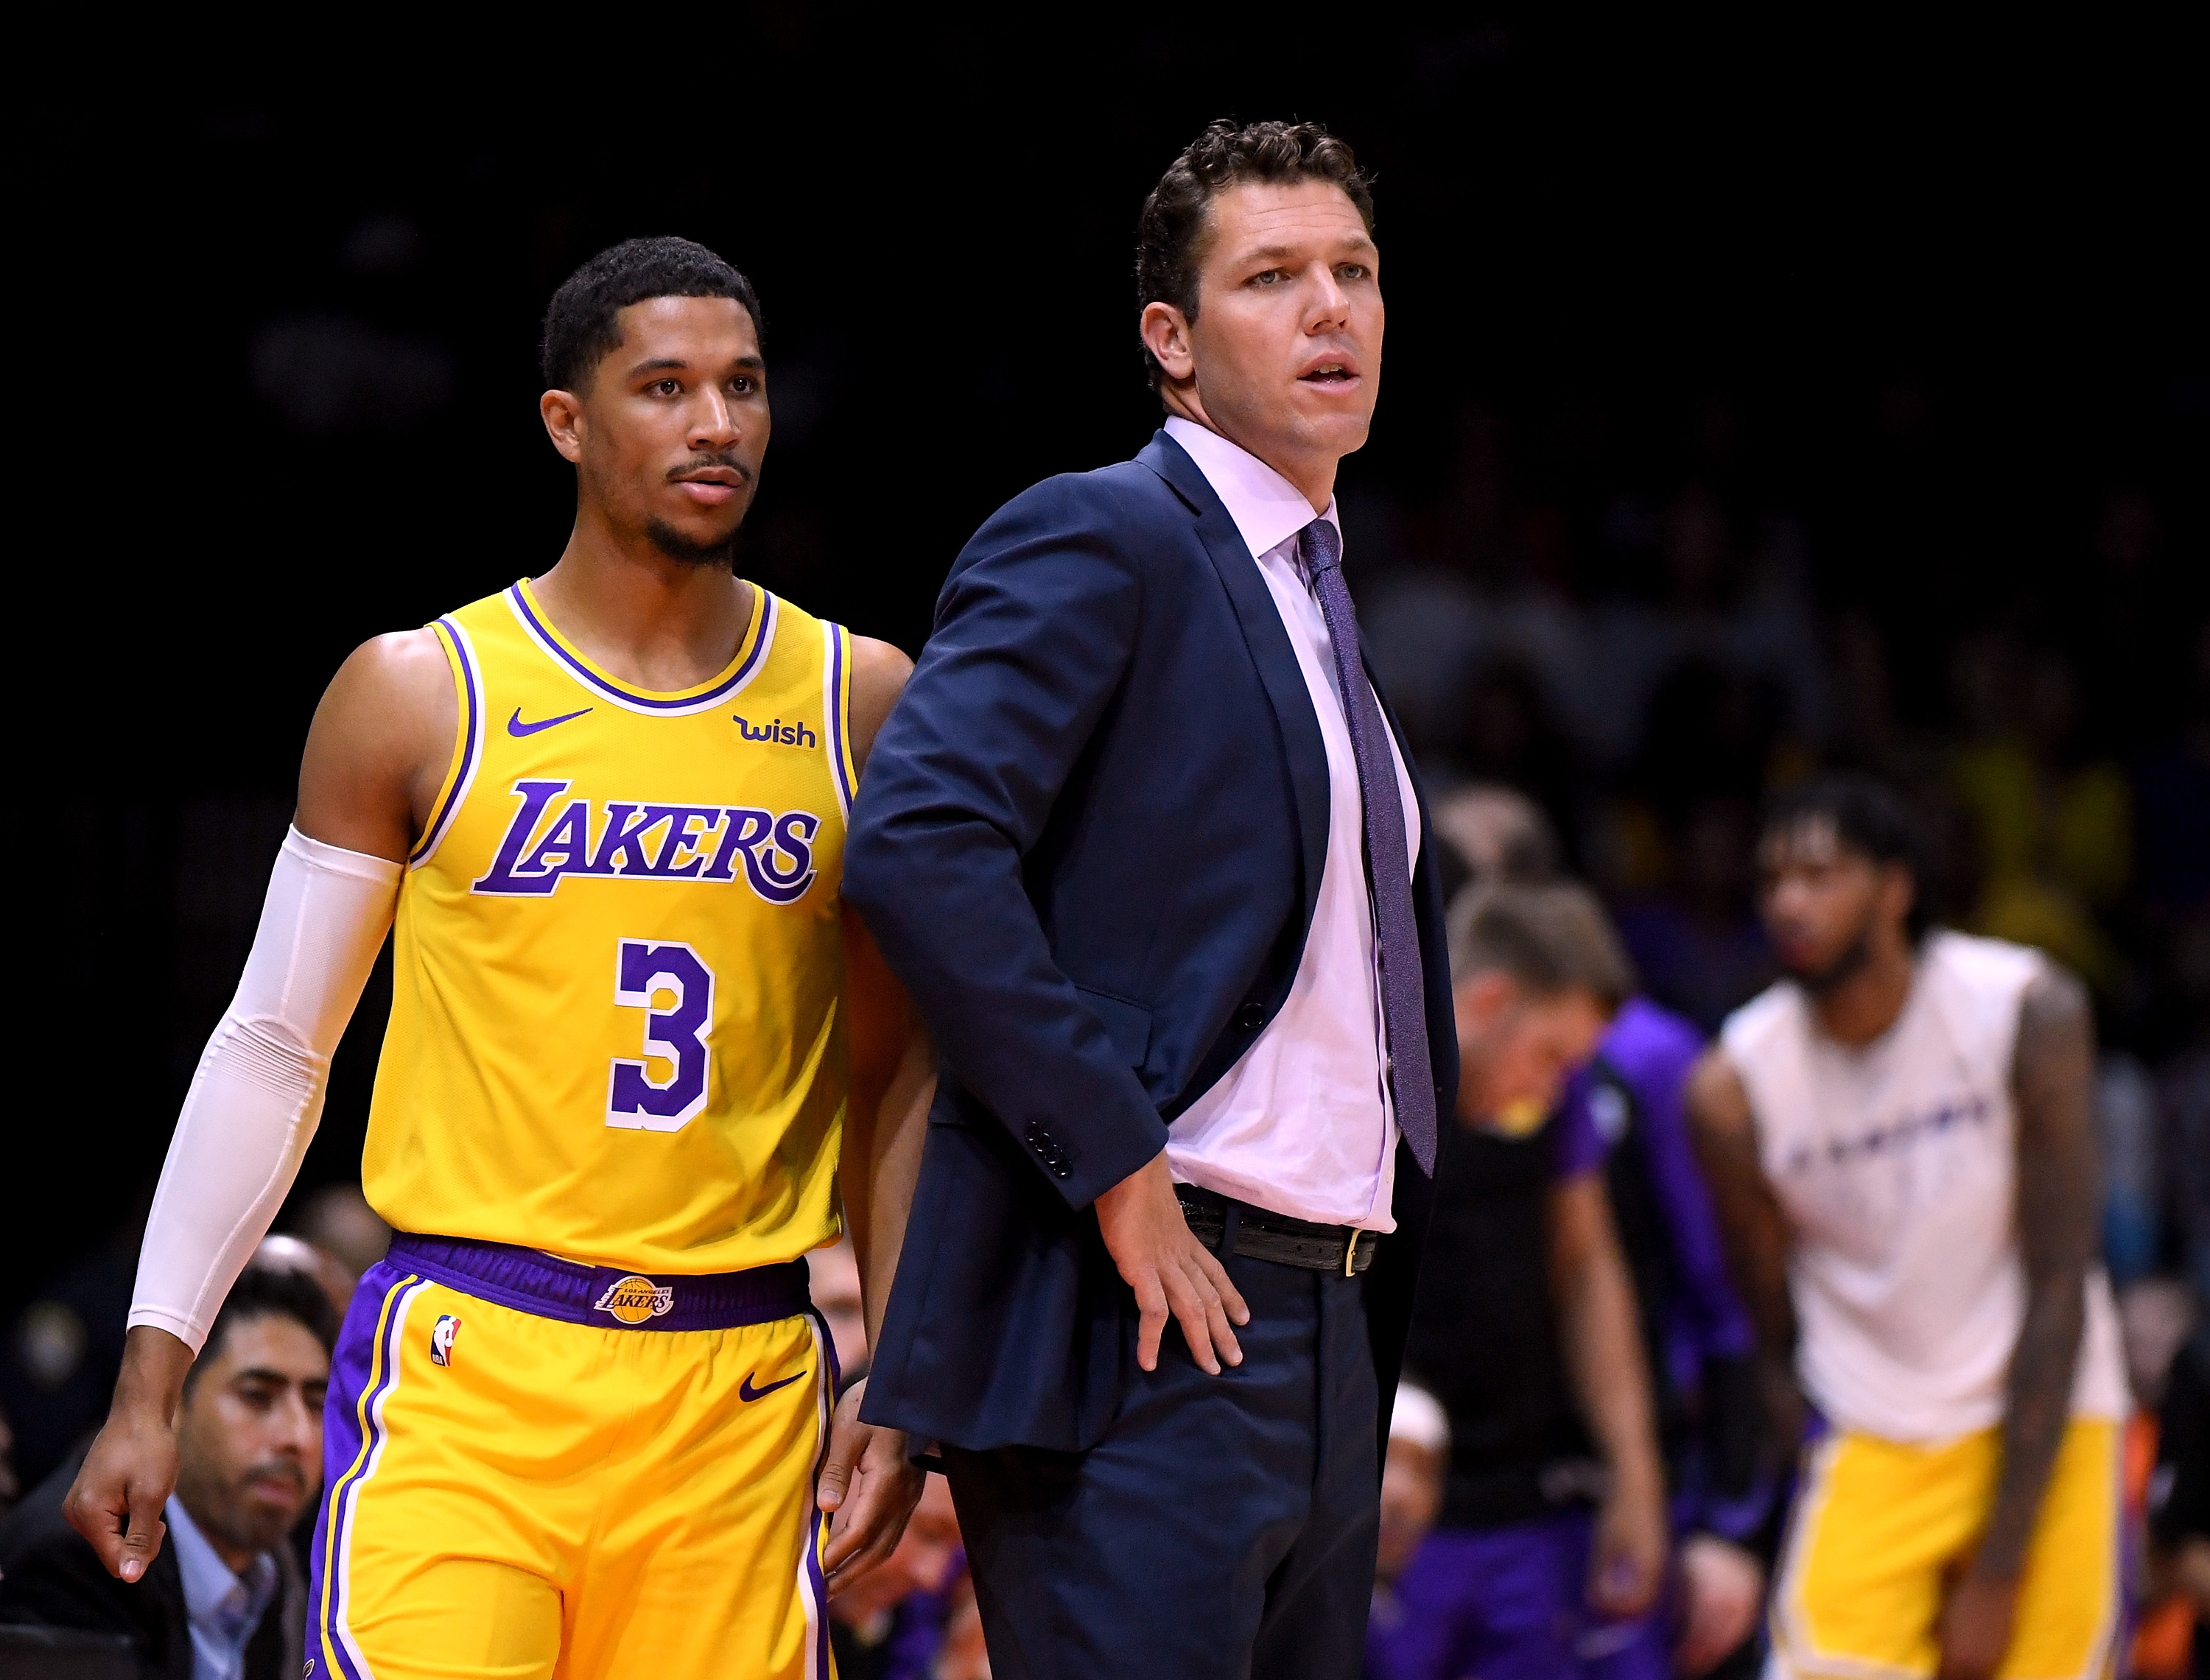 ee8306373 Luke Walton and Josh Hart believe injuries and fatigue have played a role  in the Lakers  defensive drop-off